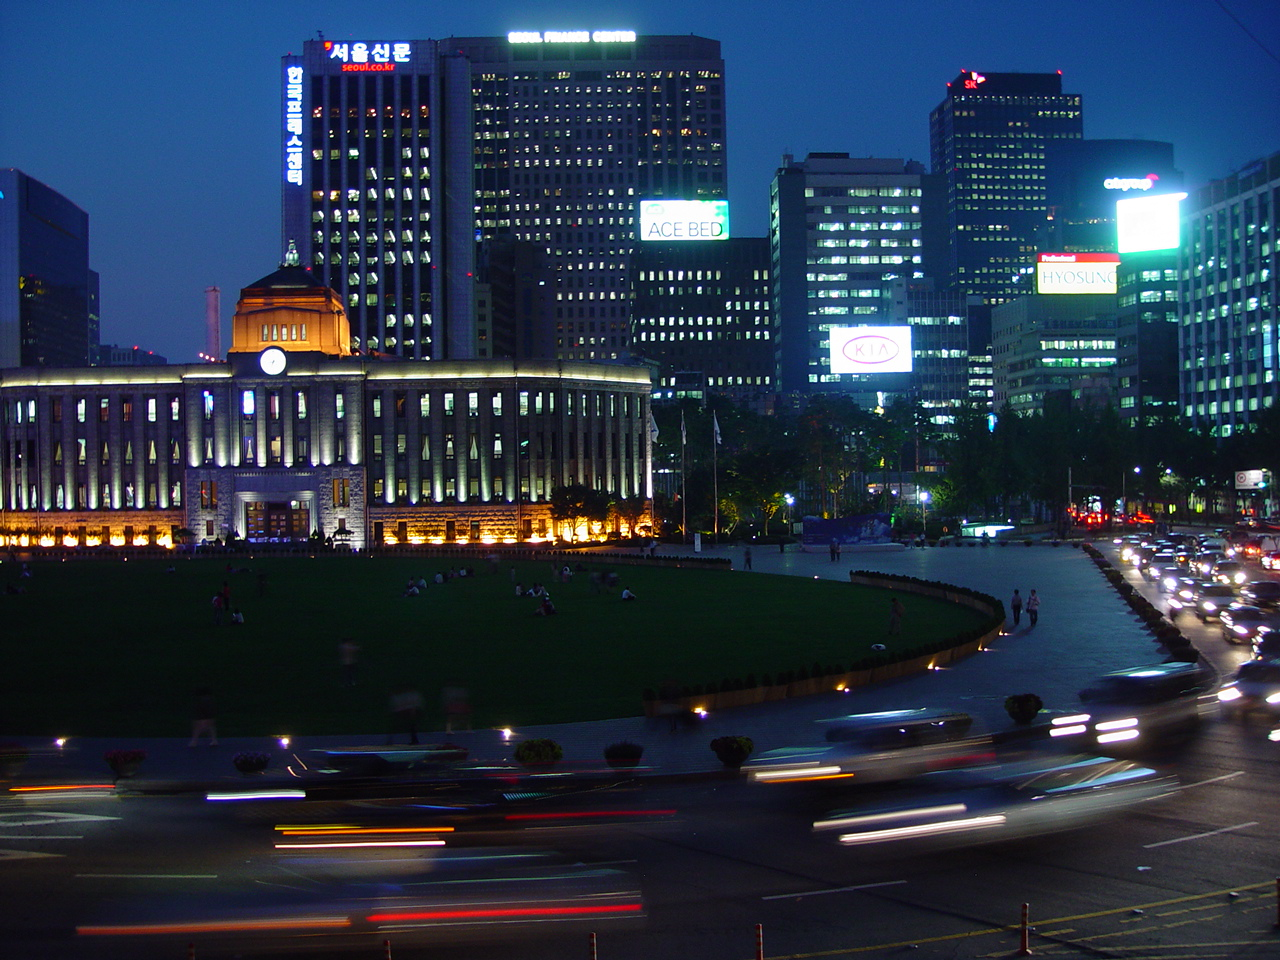 seoul-plaza-south-korea-2-1447086